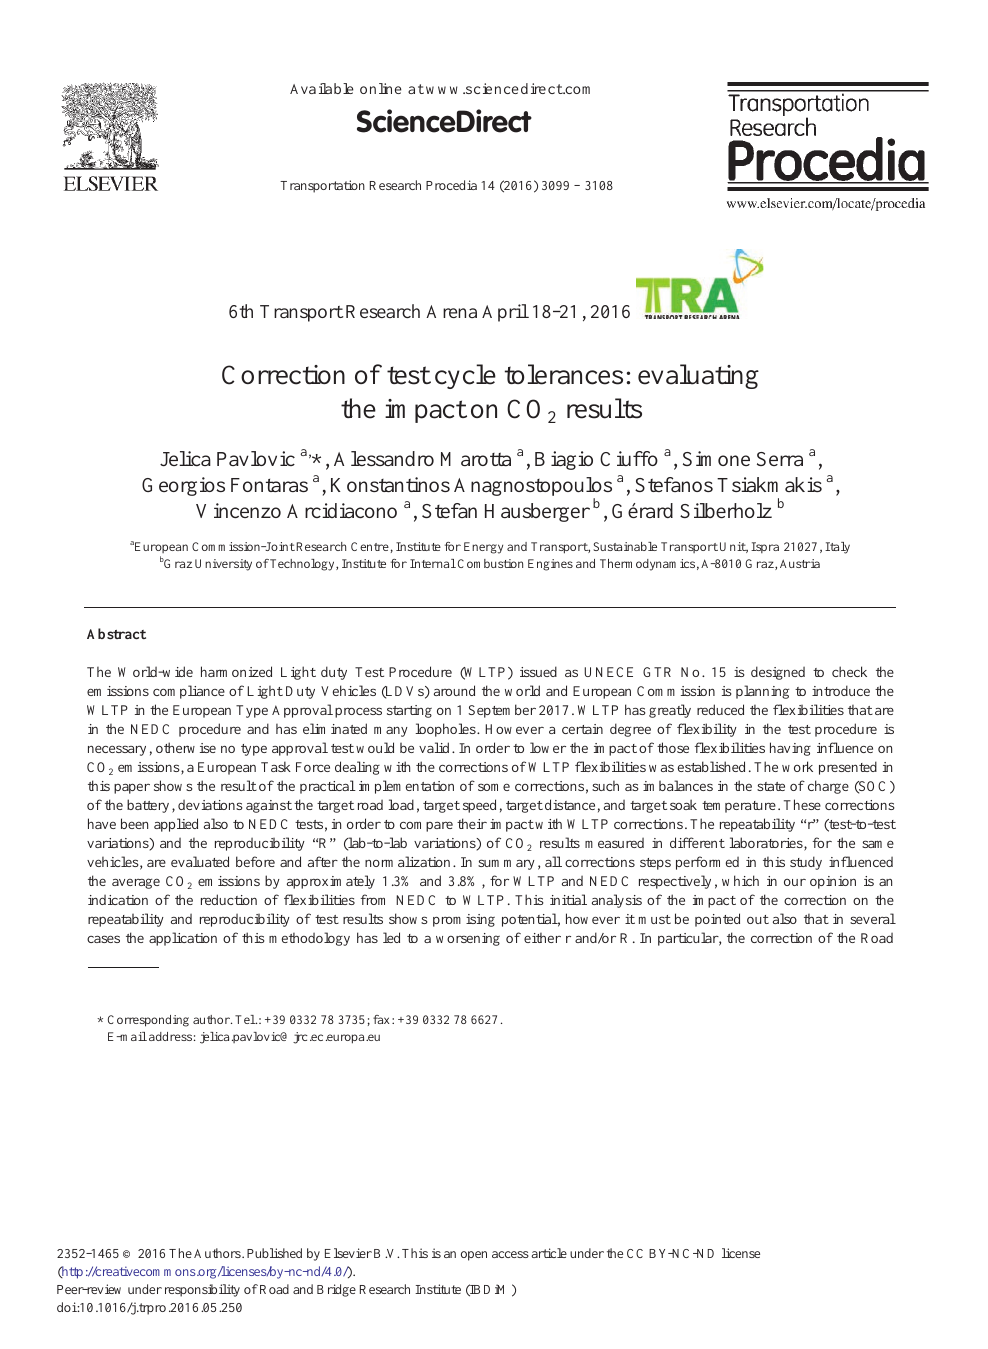 Correction of Test Cycle Tolerances: Evaluating the Impact on CO2